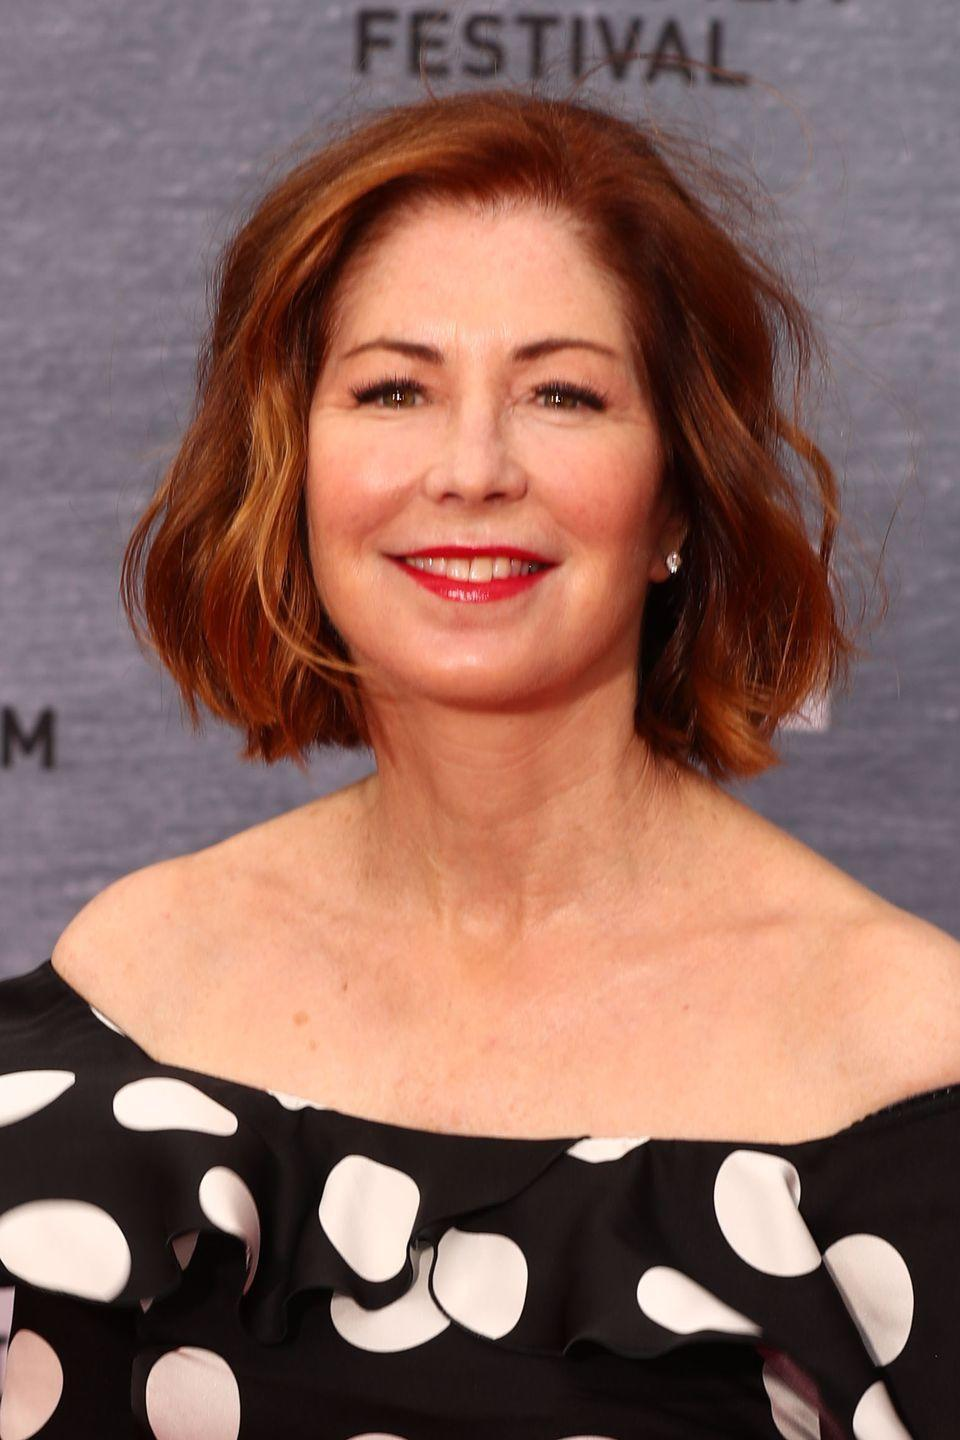 """<p>Ever since a botched botox injection, Desperate Housewives actor Dana Delany won't undergo any cosmetic surgery or enhancement. 'My dermatologist was saying, 'You should try it.' He injected my forehead, hit a nerve, and created a huge hematoma,' <a href=""""https://people.com/style/dana-delany-recalls-her-botox-and-eating-disorder-nightmares/"""" rel=""""nofollow noopener"""" target=""""_blank"""" data-ylk=""""slk:she said"""" class=""""link rapid-noclick-resp"""">she said</a>. """"The nerve has been dead ever since. It affected the muscle in my right eye, so my eye has started to droop a little bit.'</p>"""